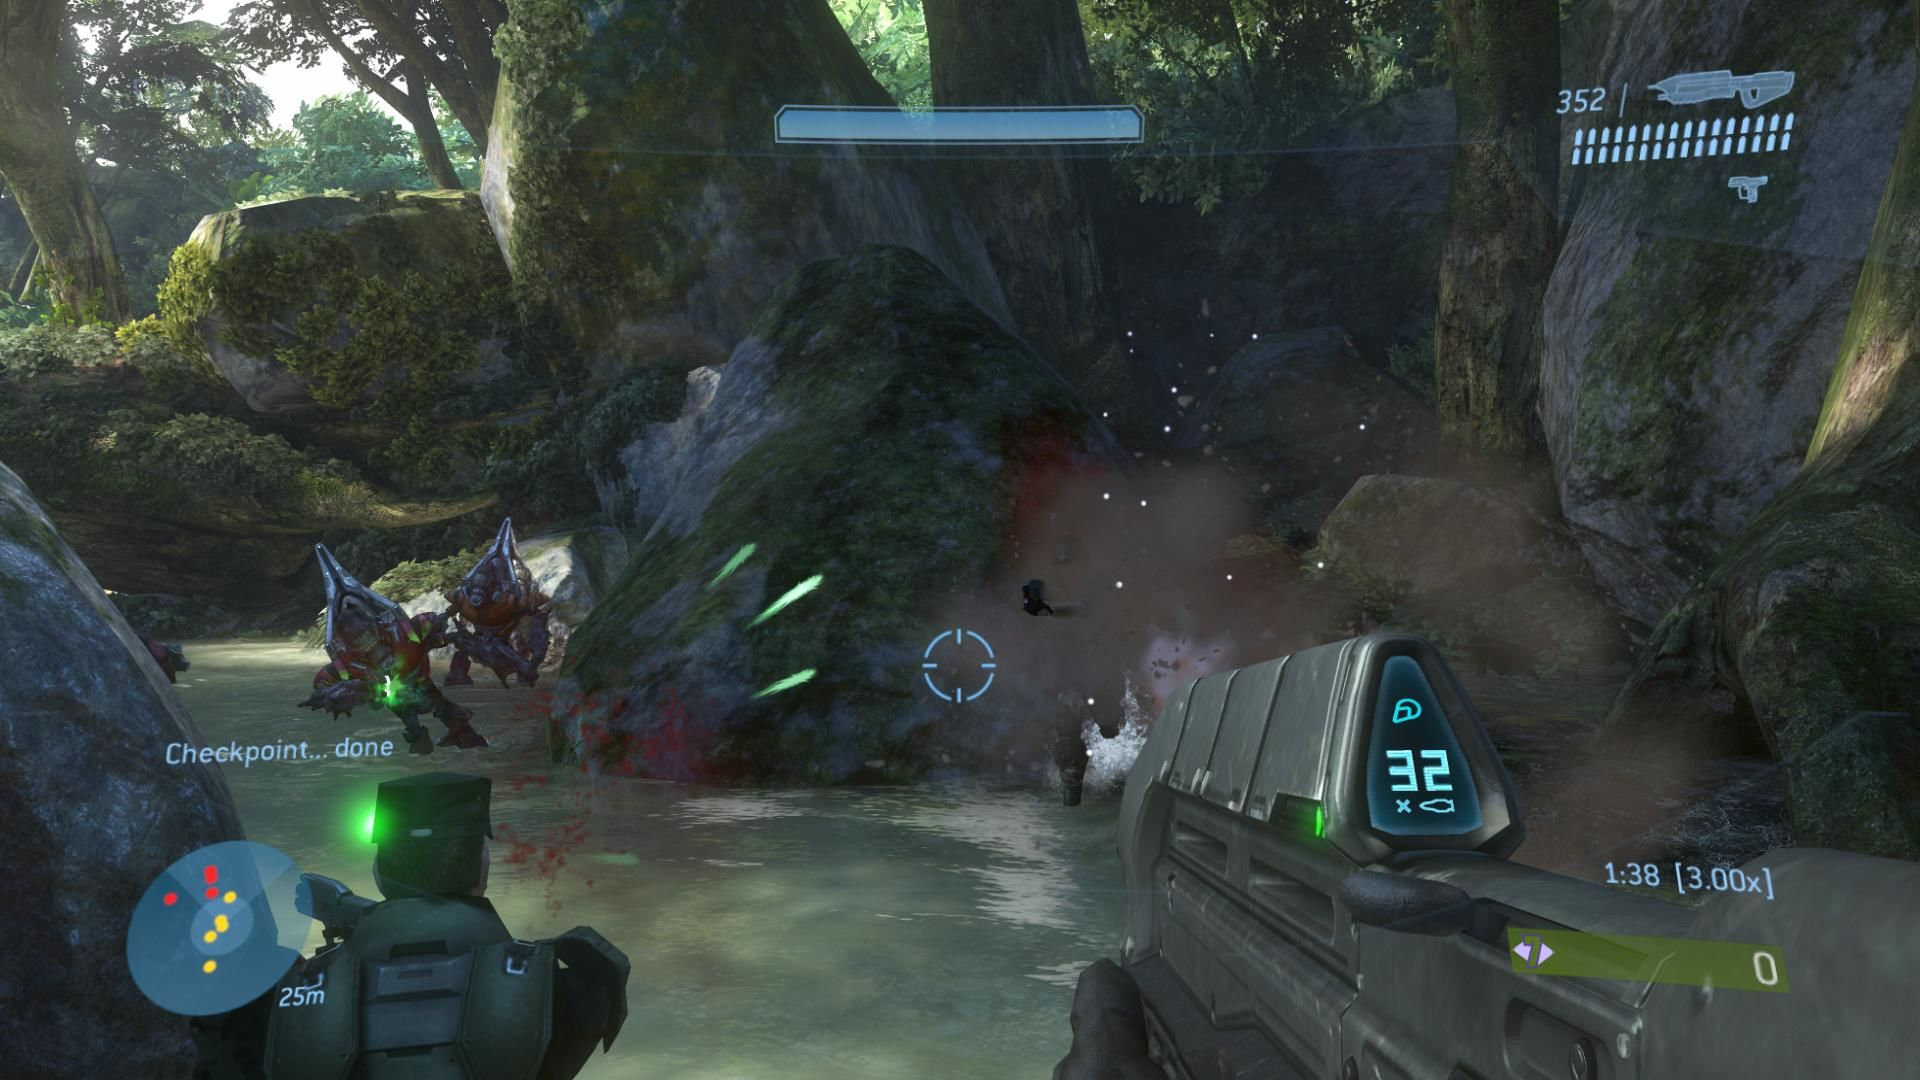 halo 3 screenshots for xbox 360 mobygames